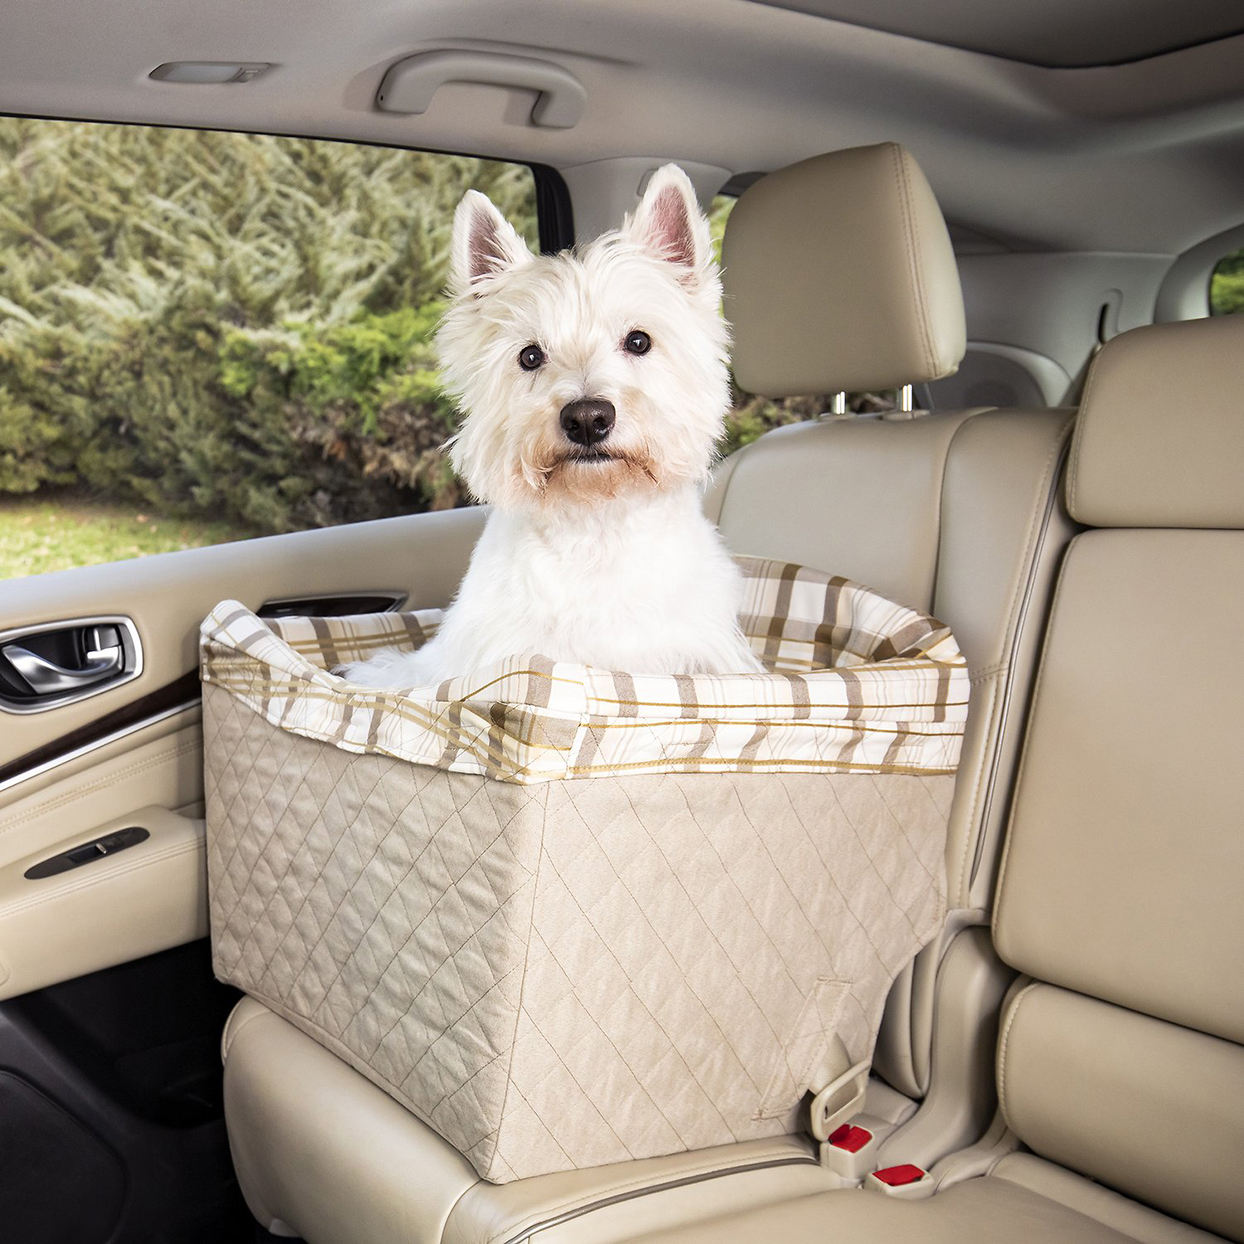 Dog sitting in a PetSafe Happy Ride car booster